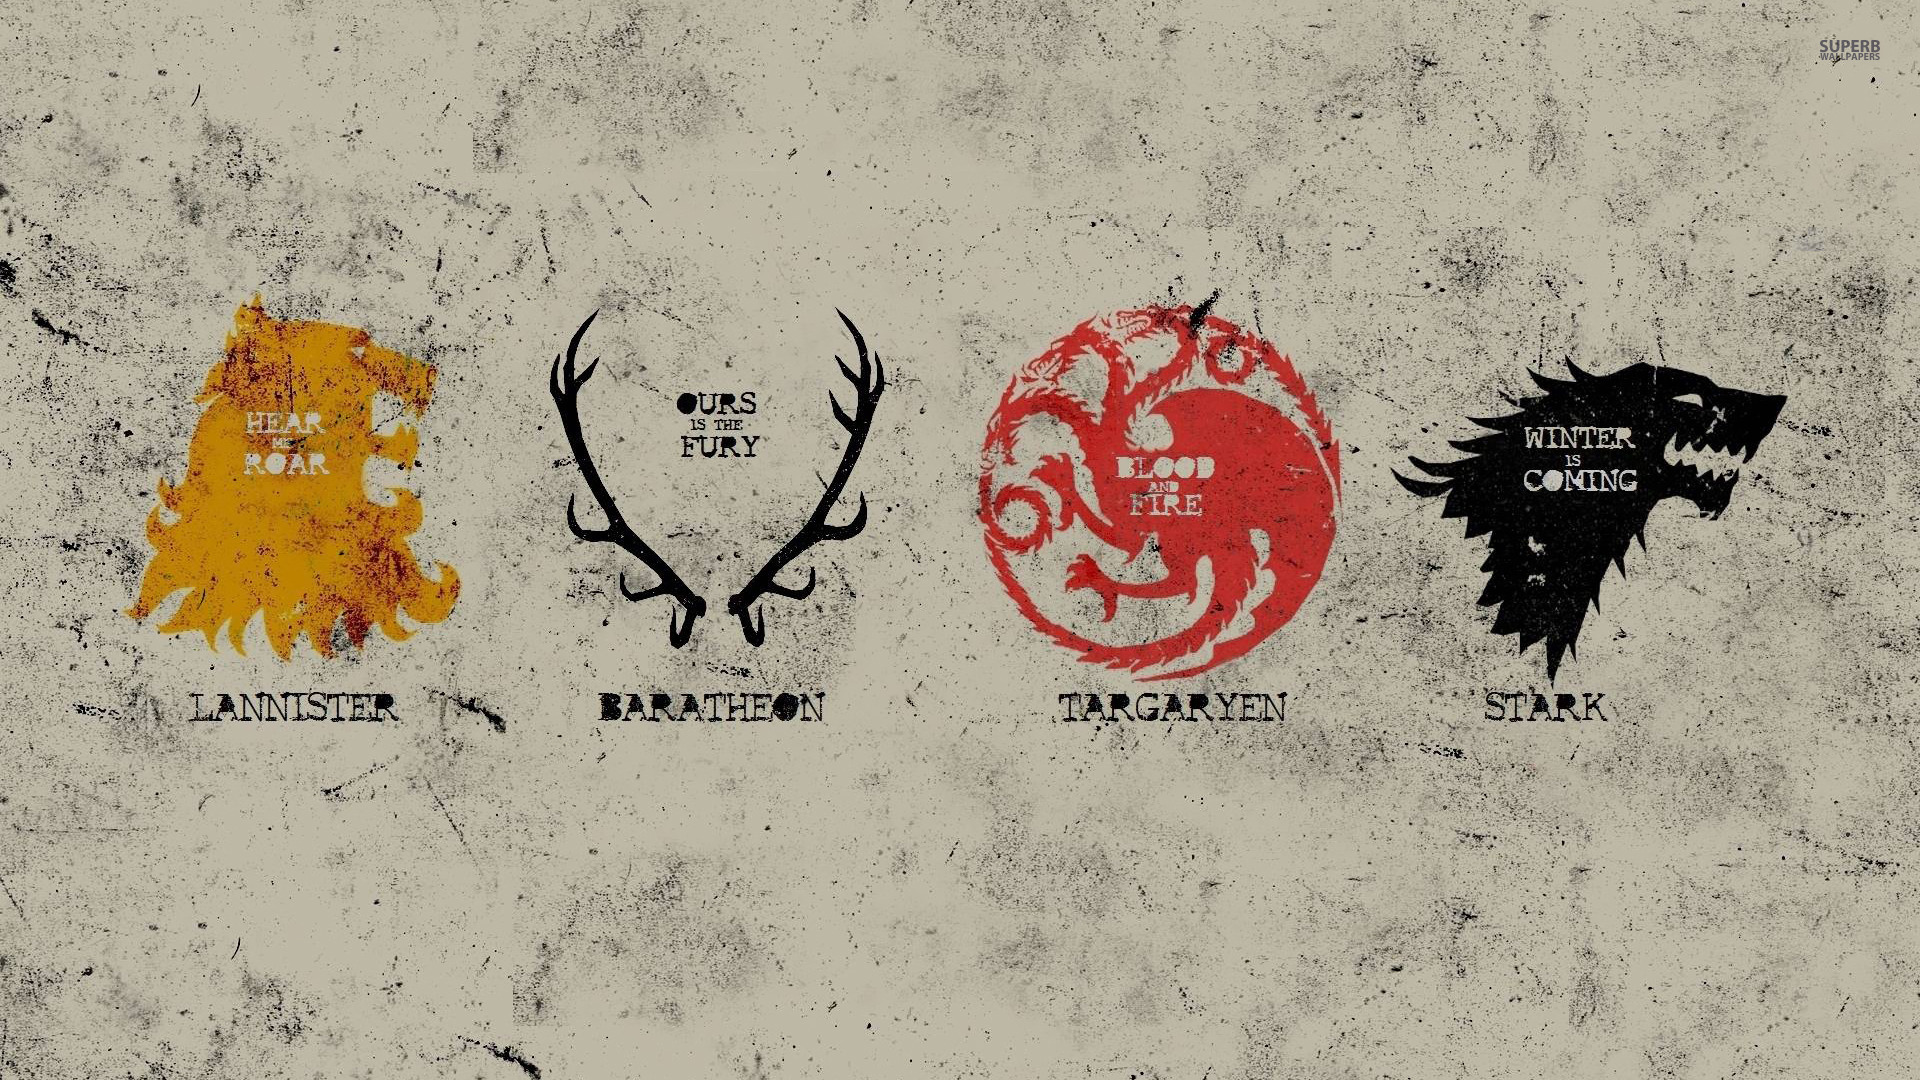 30 Hd Game Of Thrones Wallpapers To Support Your Favorite